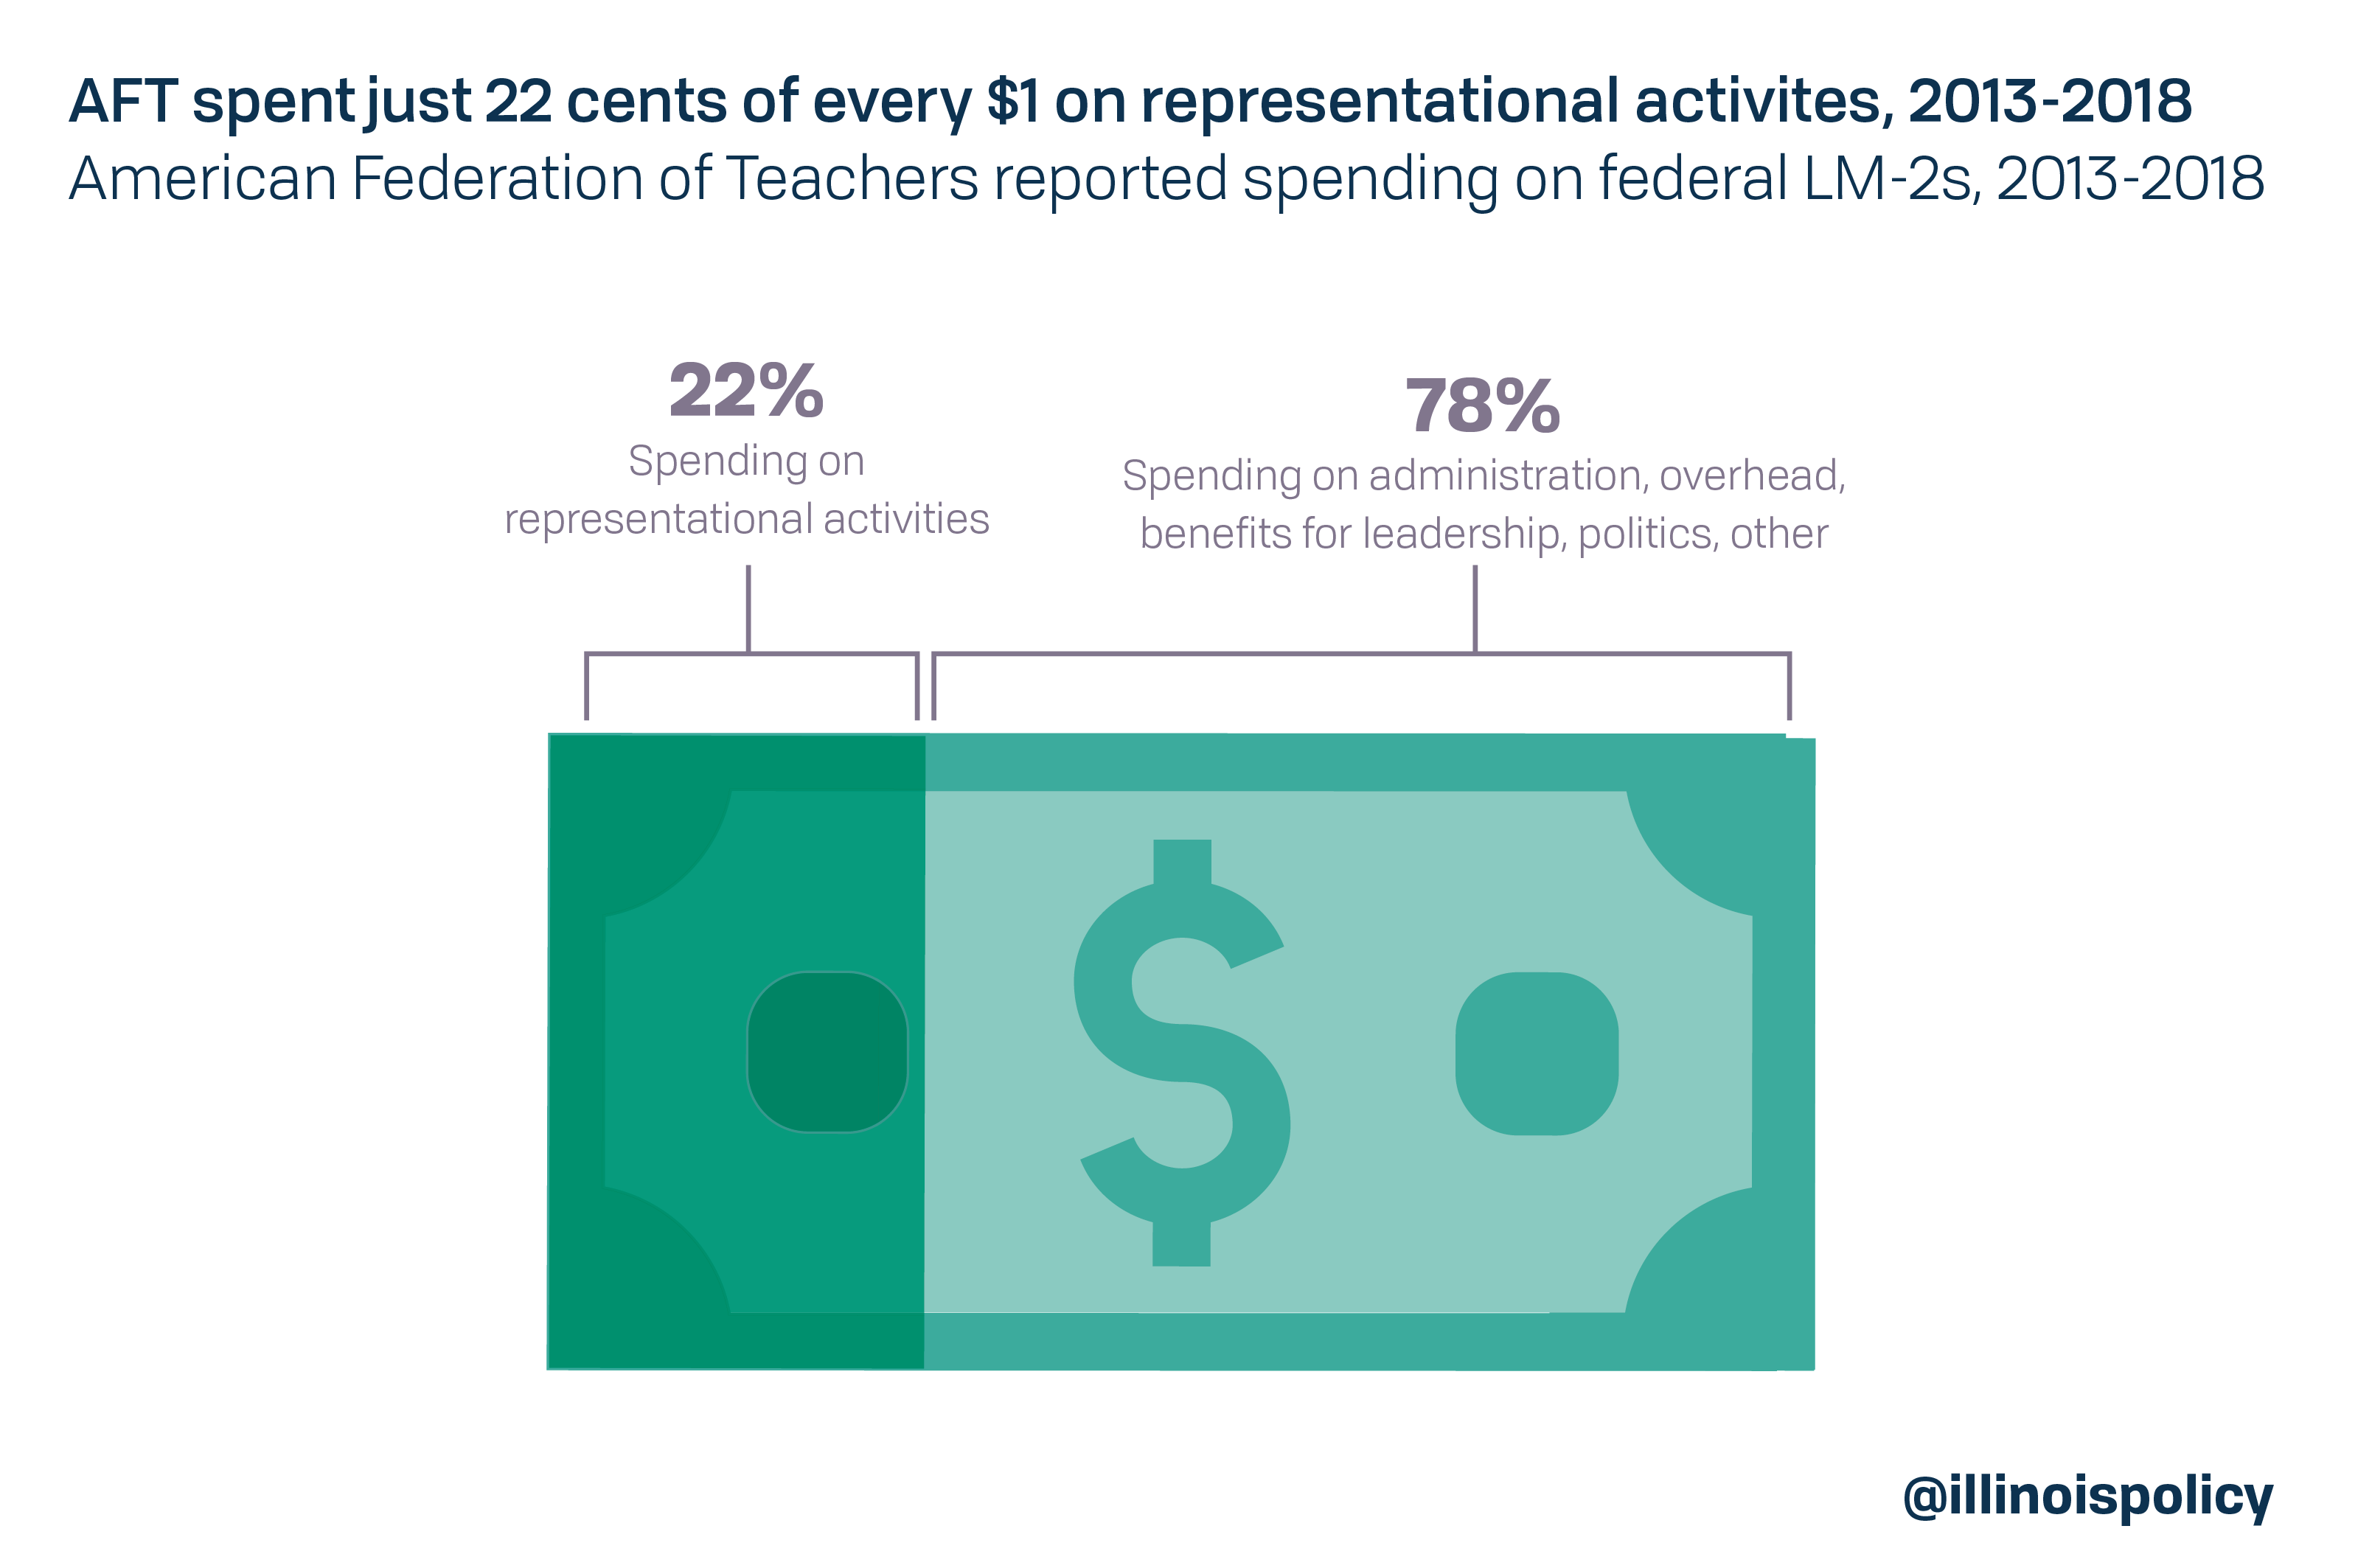 AFT spent just 22 cents of every $1 on representational activities, 2013-2018